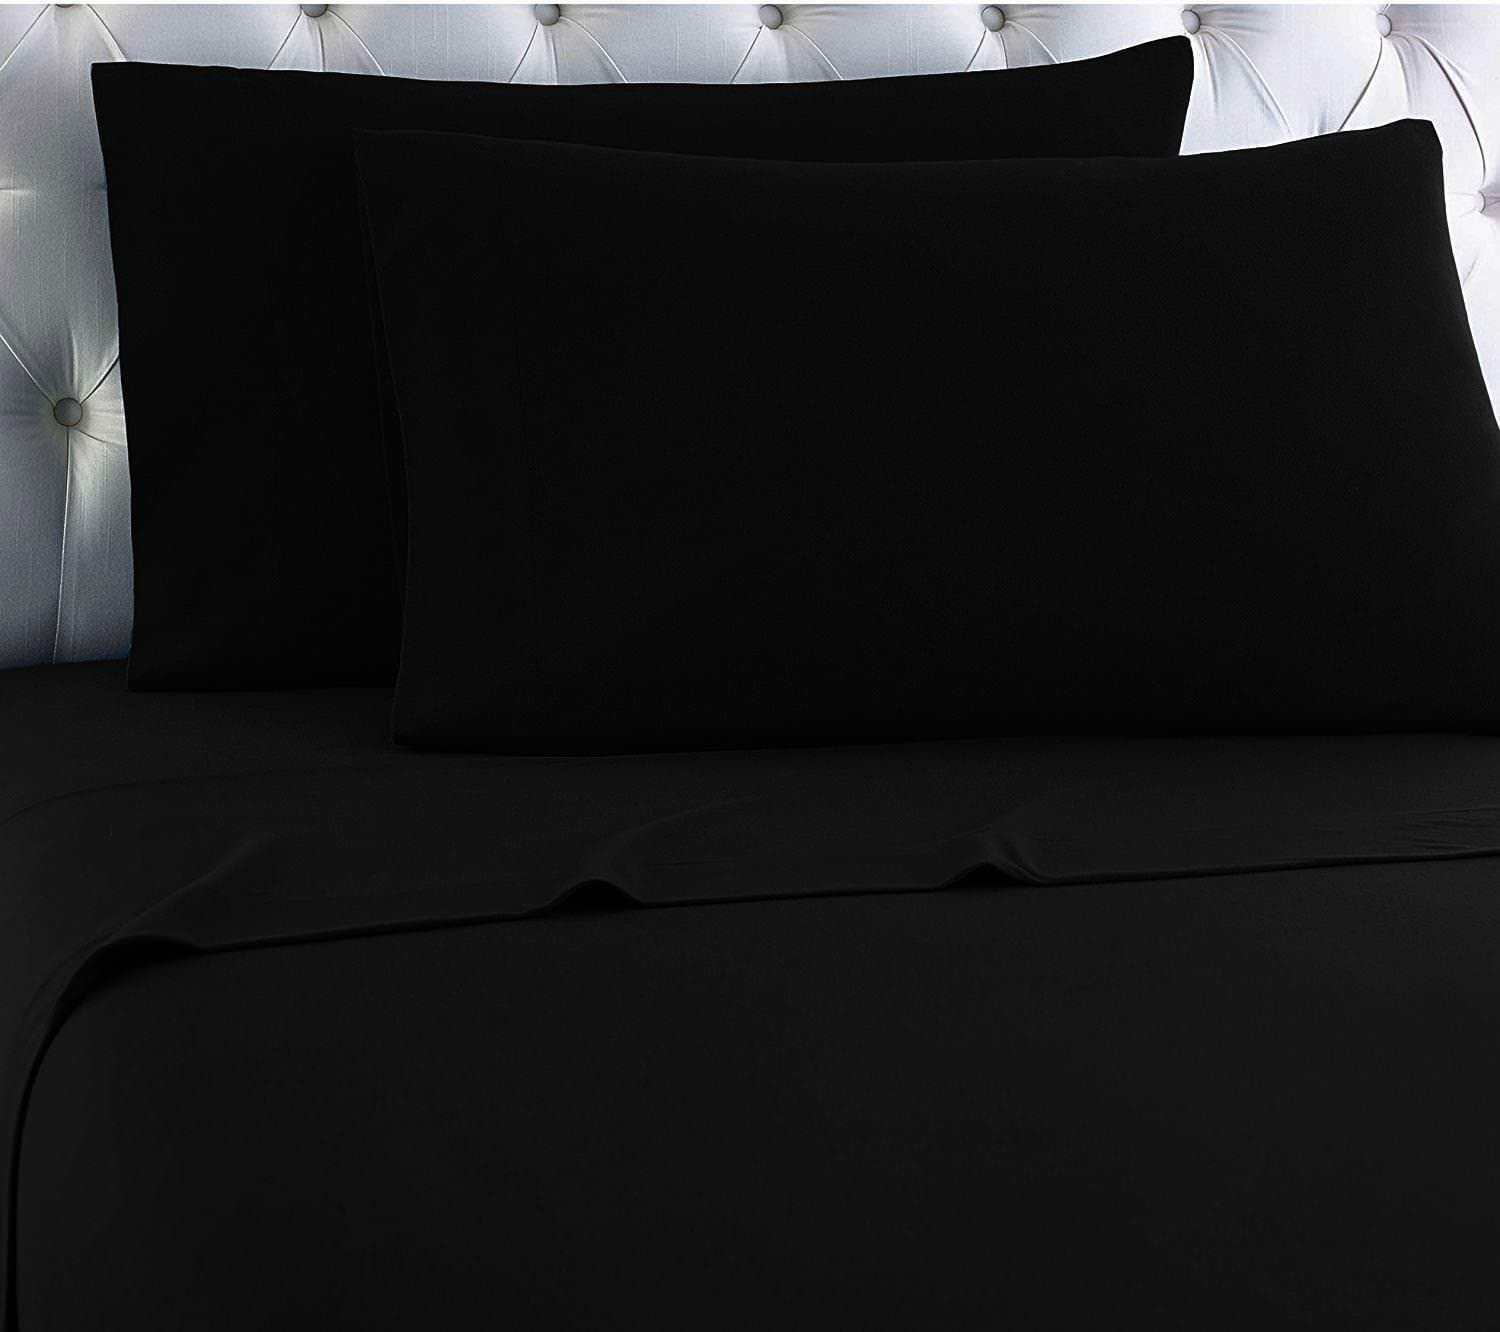 Flannel 100% Cotton 4-Piece Sheet Set Winter Bed Sheets